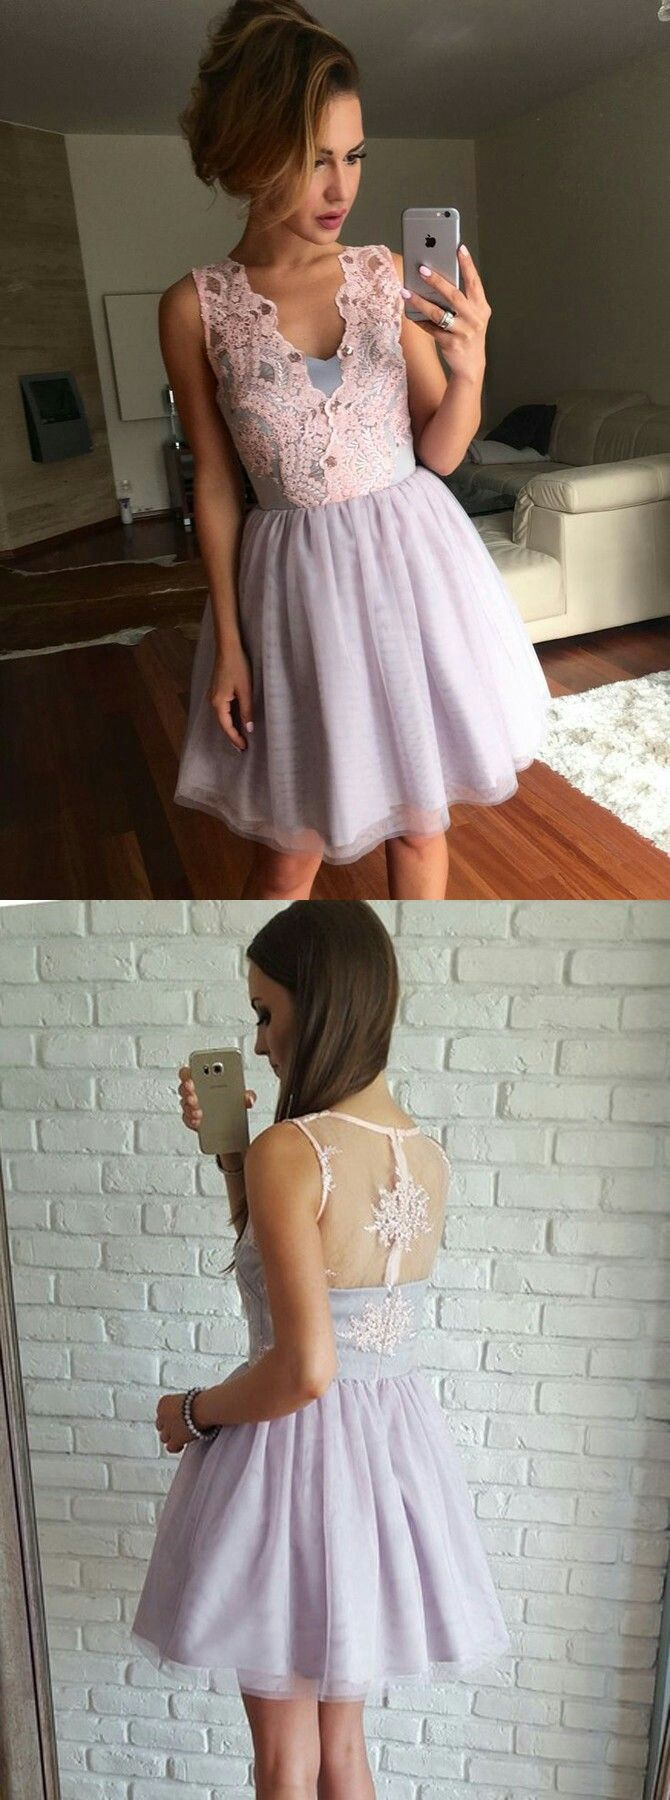 Lace homecoming dressesshort homecoming dressestulle homecoming